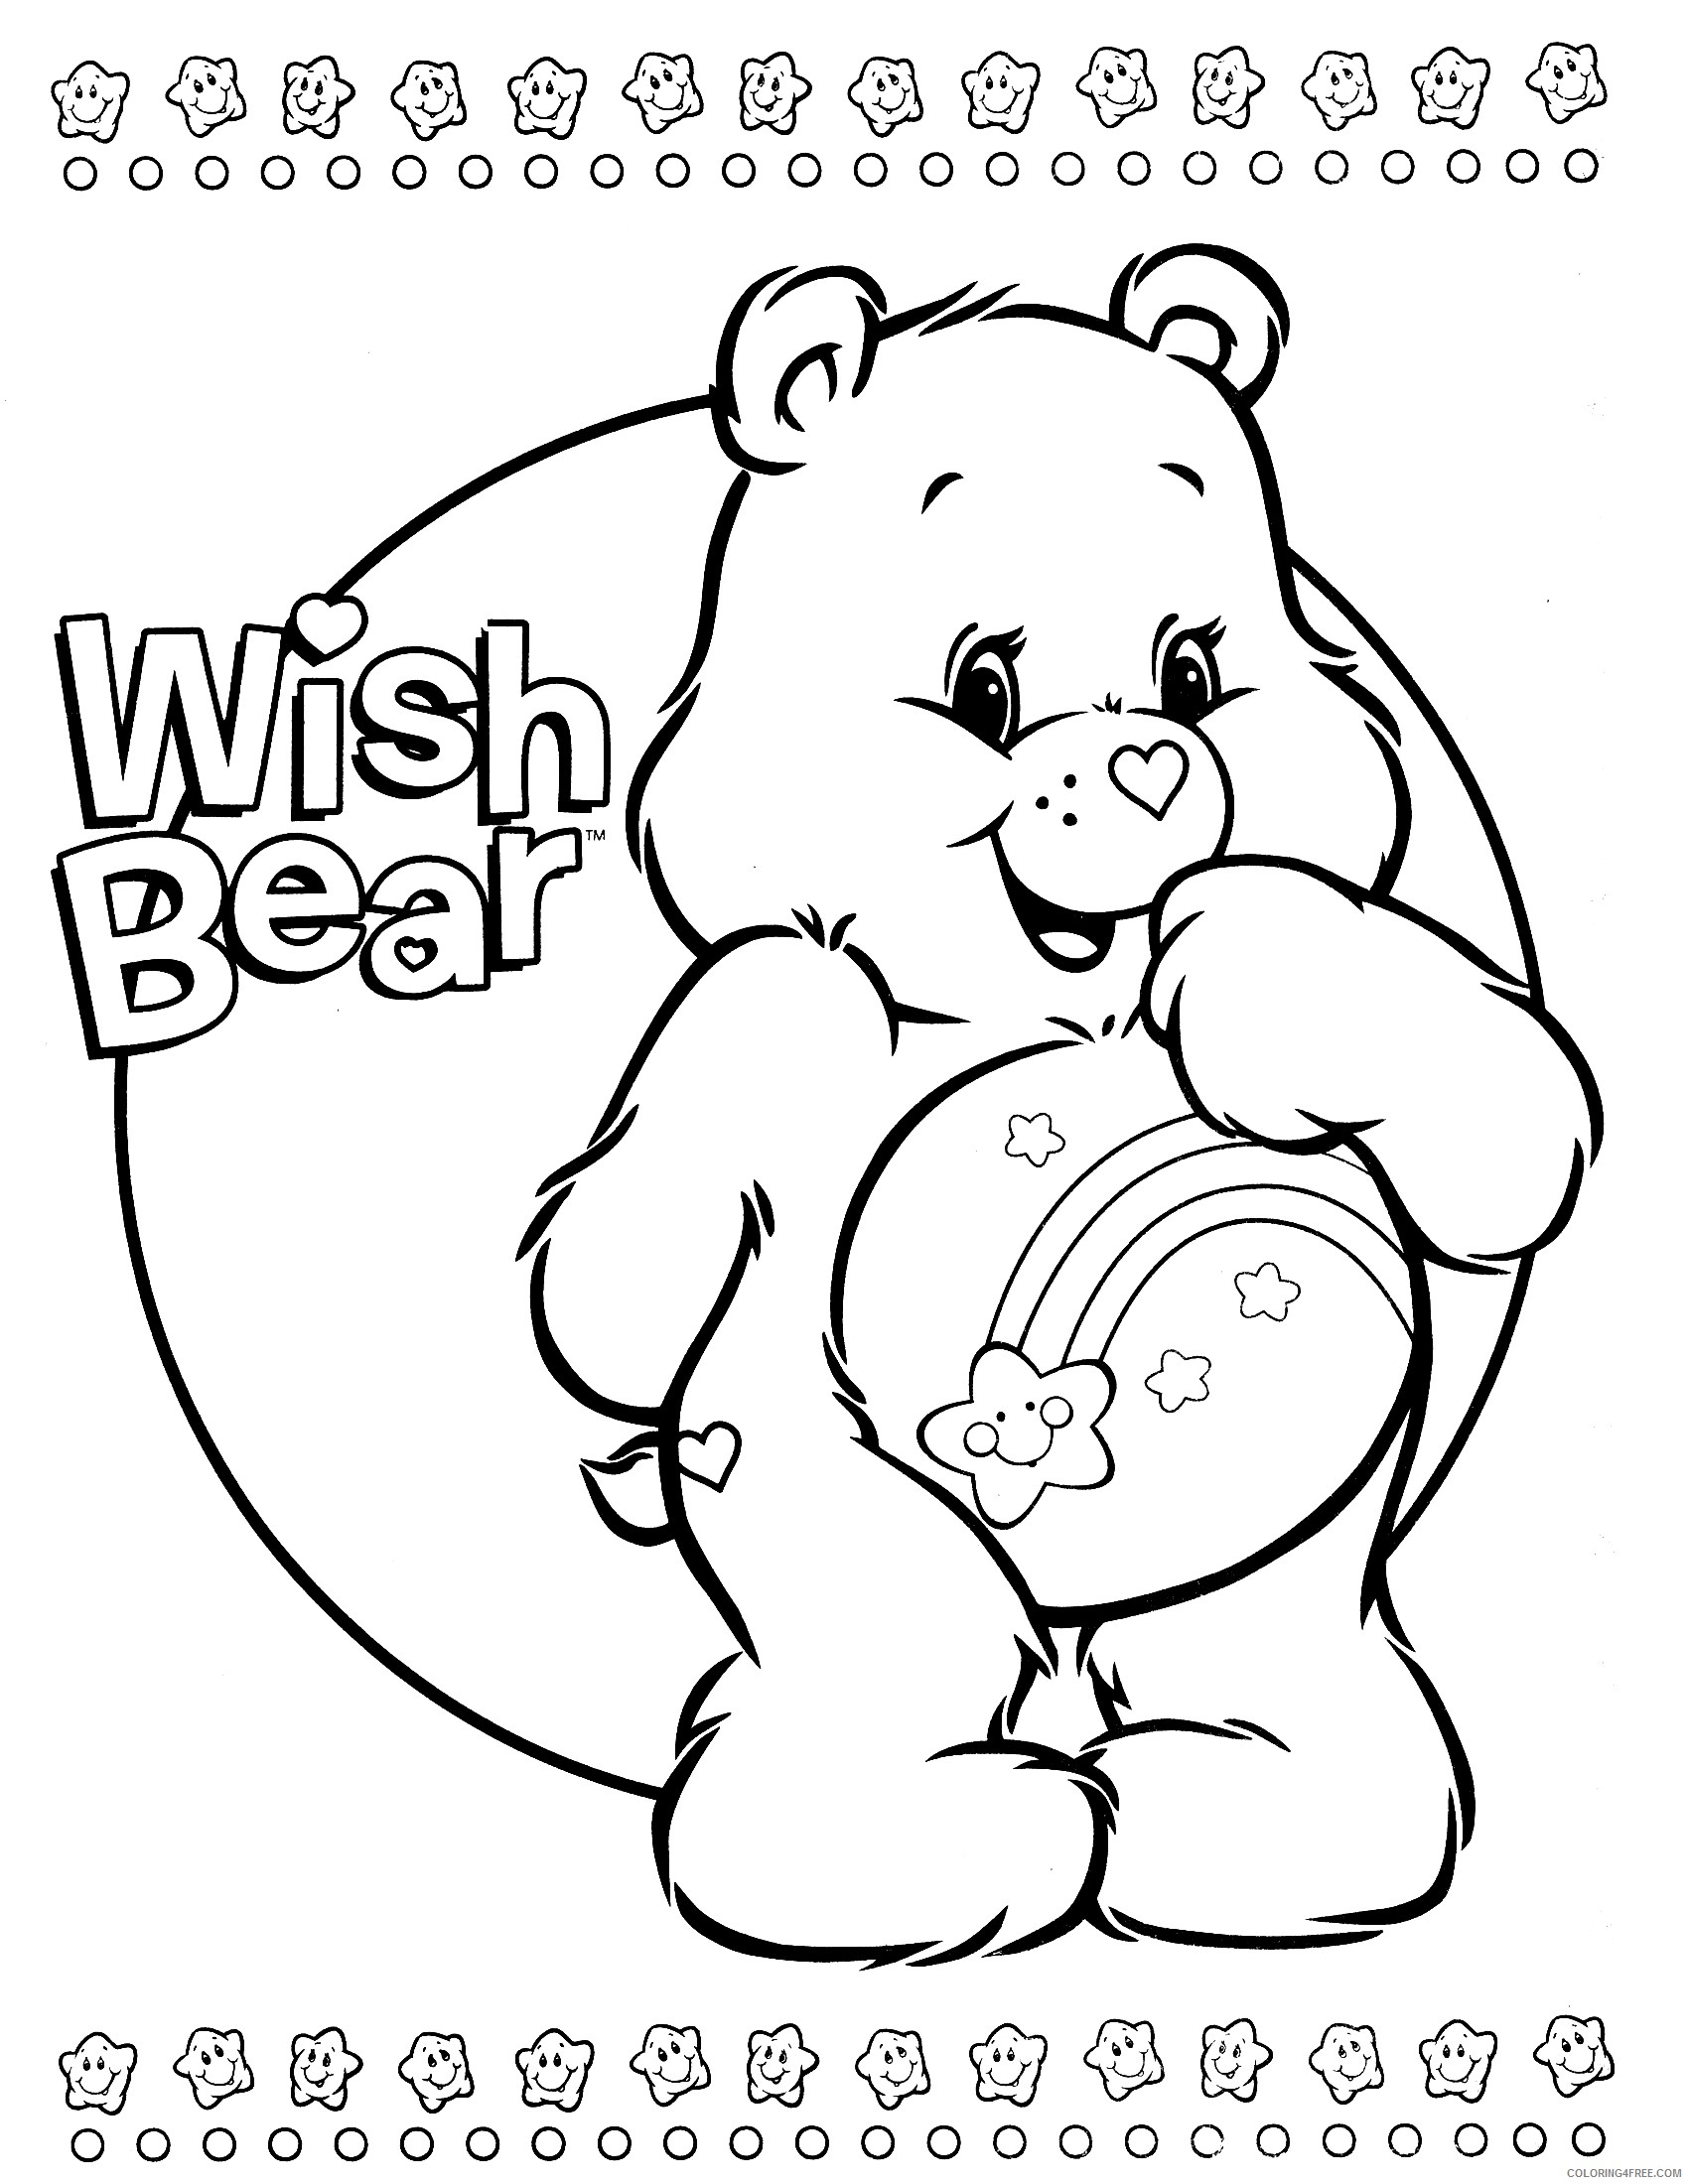 care bears coloring pages wish Coloring4free